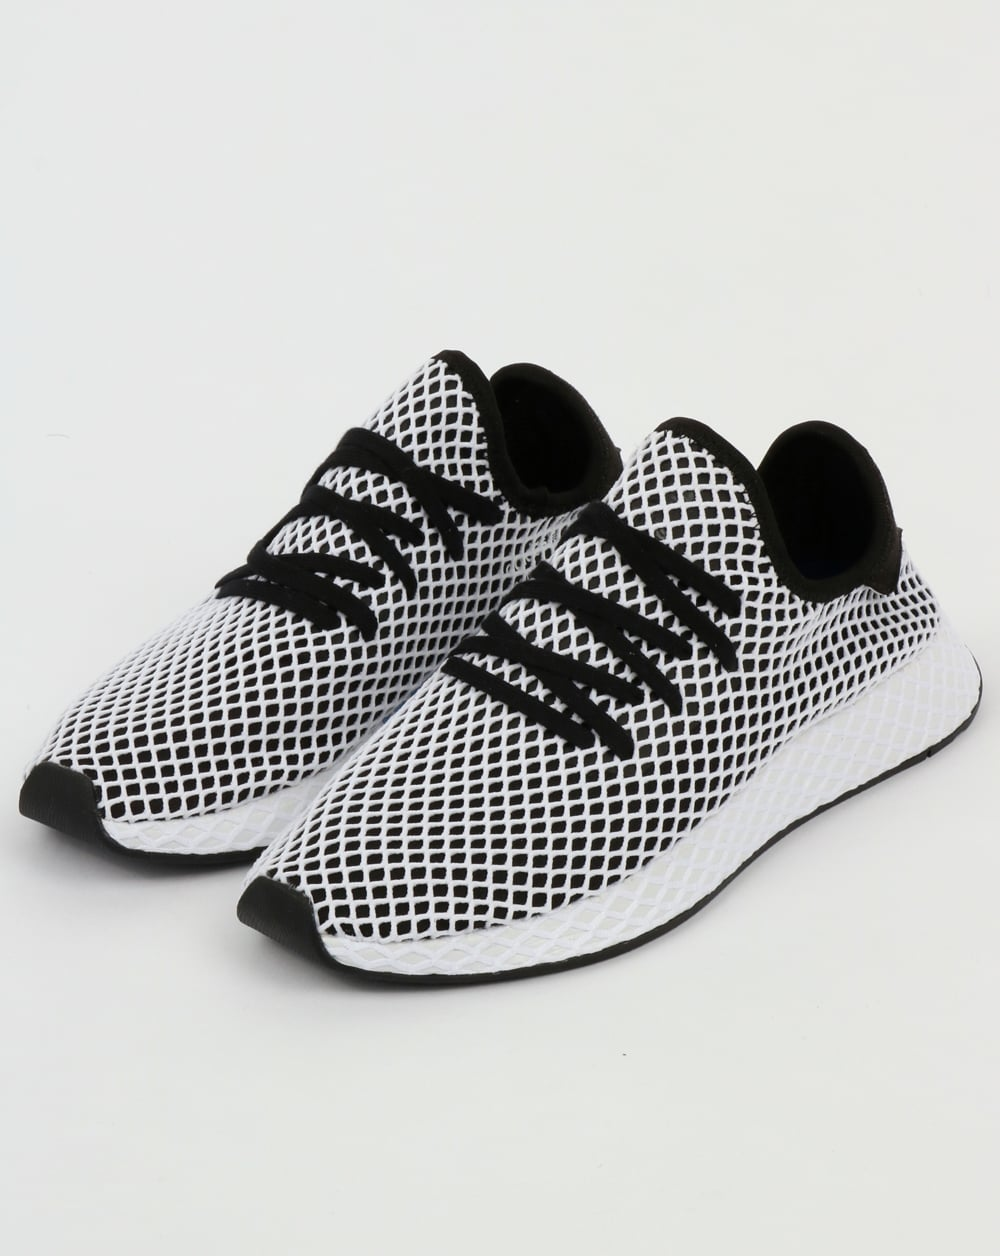 new style 3b47c a3f55 adidas Trainers Adidas Deerupt Runner Trainers Black